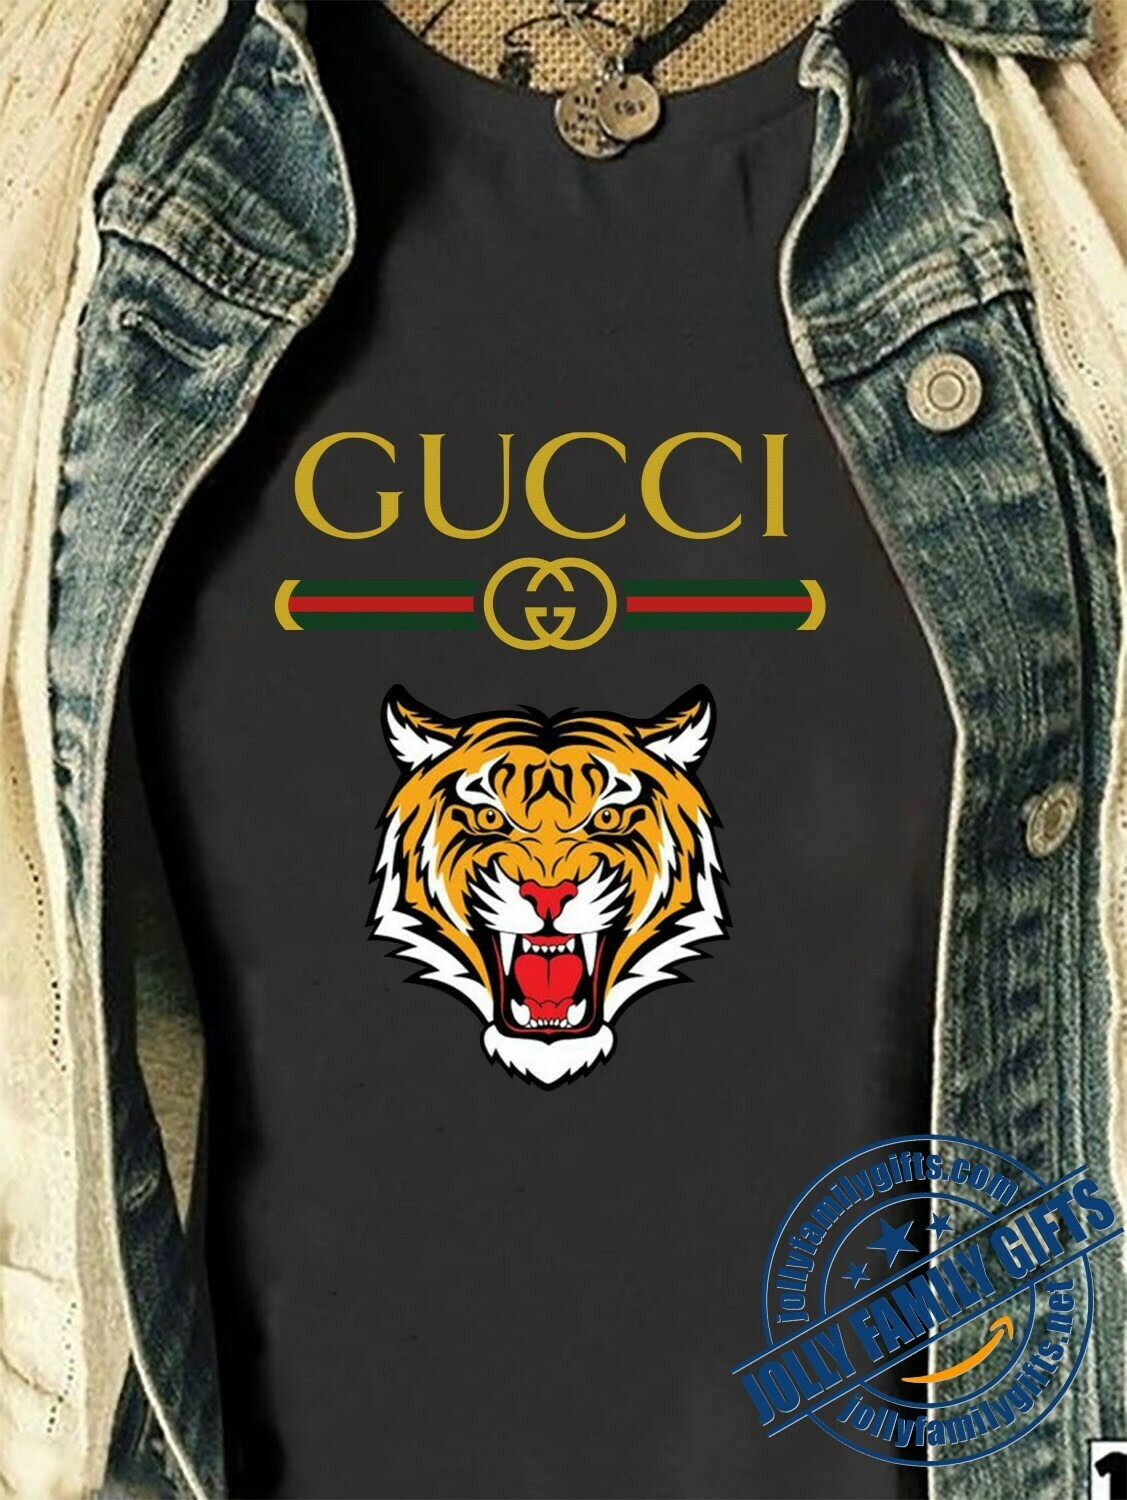 Tiger Logo Gucci, Gucci Shirt, Gucci T-shirt, Gucci Logo, Gucci Fashion shirt, Fashion shirt, Gucci Design shirt, Snake Gucci vintage shirt Unisex T-Shirt Hoodie Sweatshirt Sweater for Ladies Women